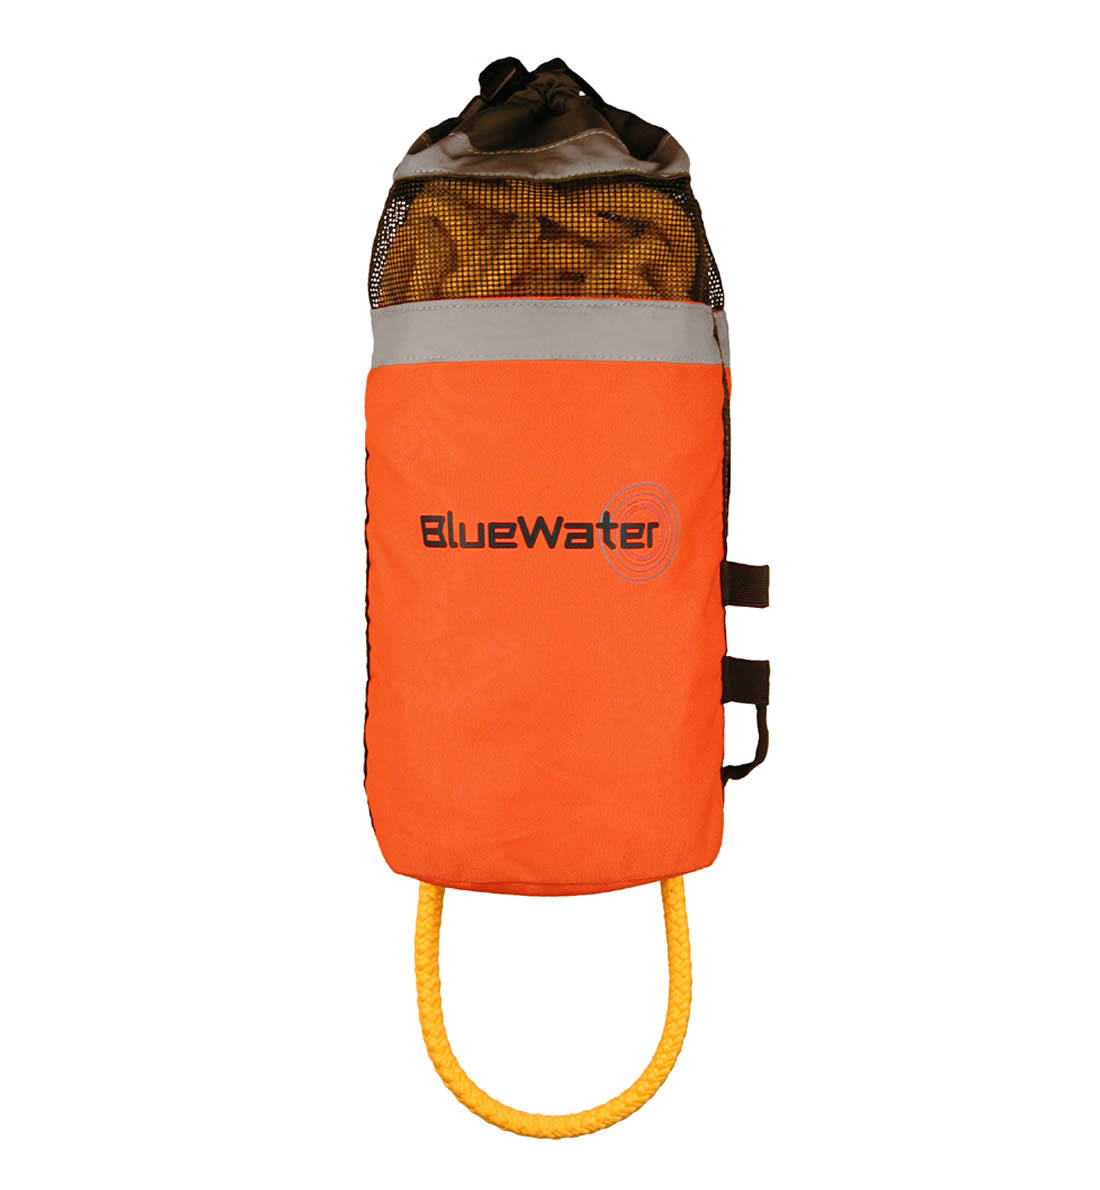 Bluewater Water Rescue Throw Bags